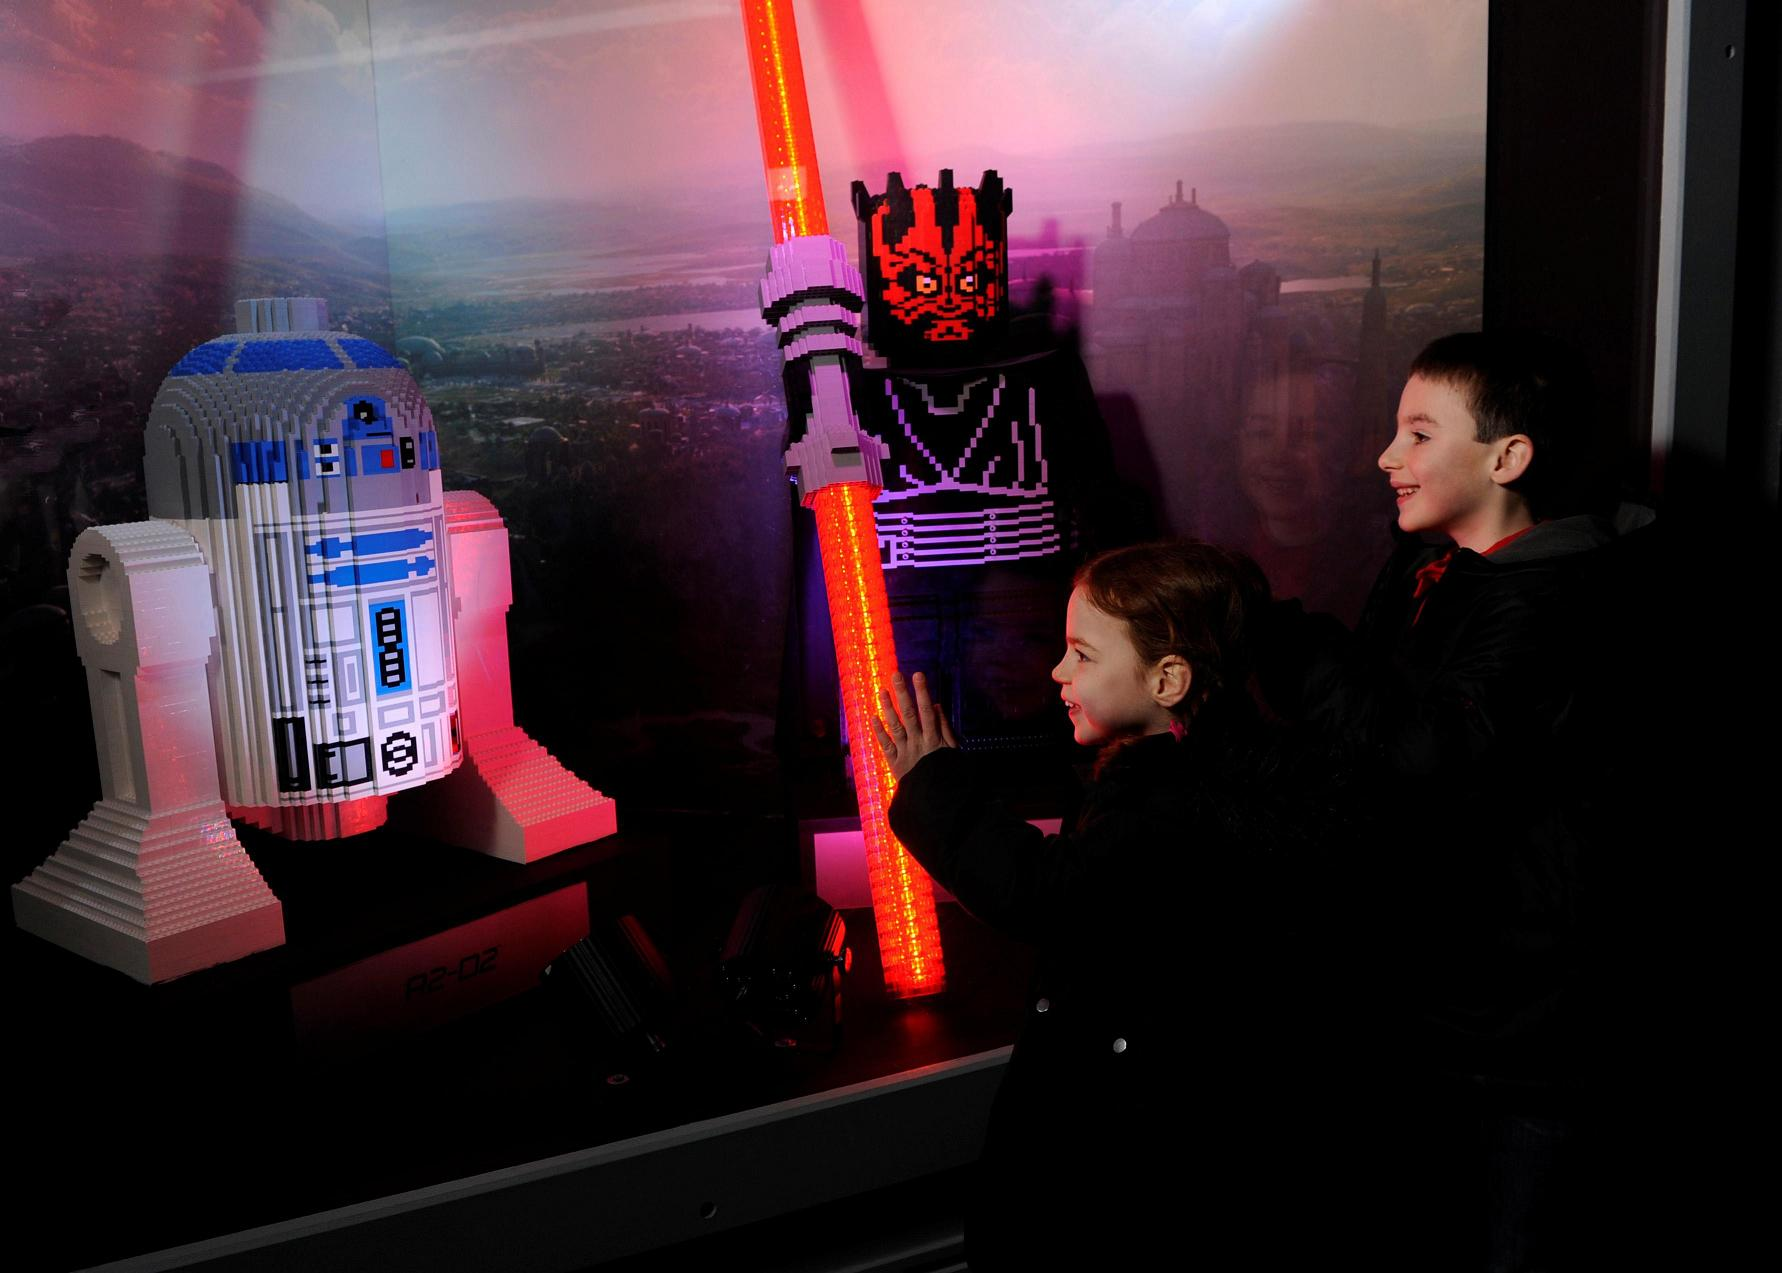 The Force will definitely be with you this weekend if you strap on your lightsaber and step into your land cruiser for a trip to the LEGOLAND® Windsor Resort for a Star Wars™ spectacular